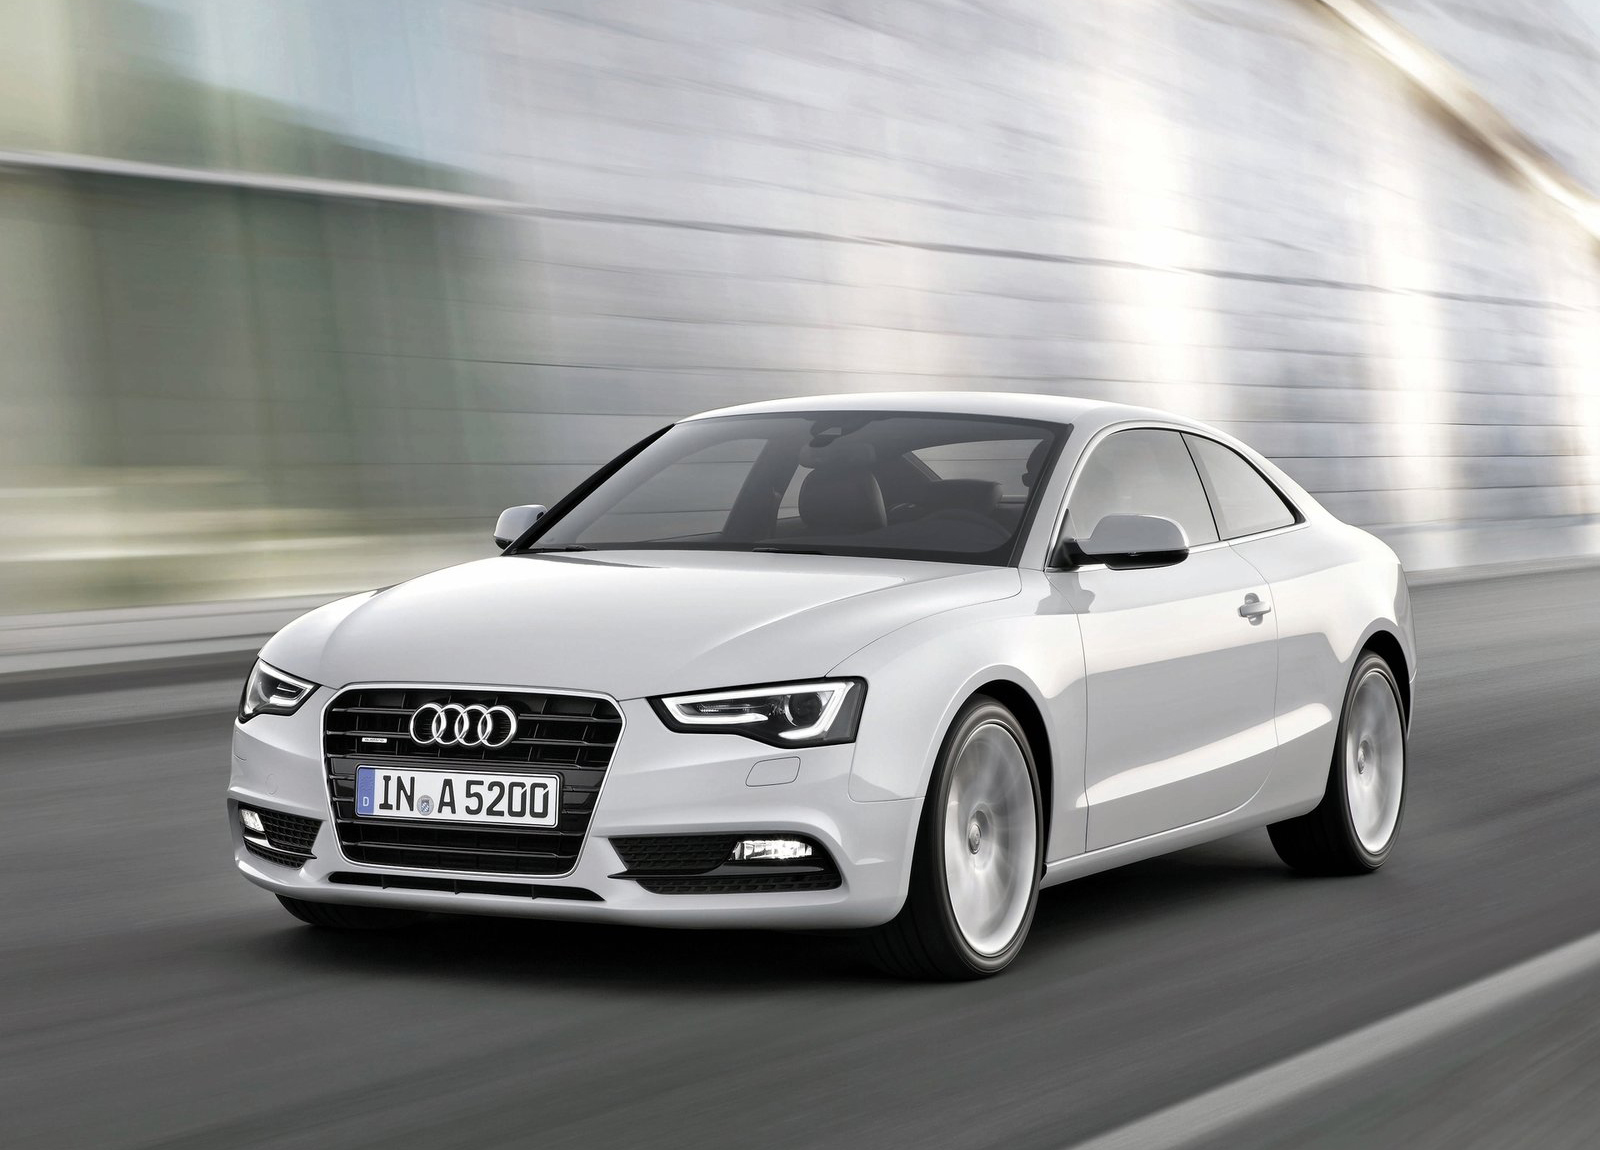 audi a5 hd wallpapers the world of audi. Black Bedroom Furniture Sets. Home Design Ideas